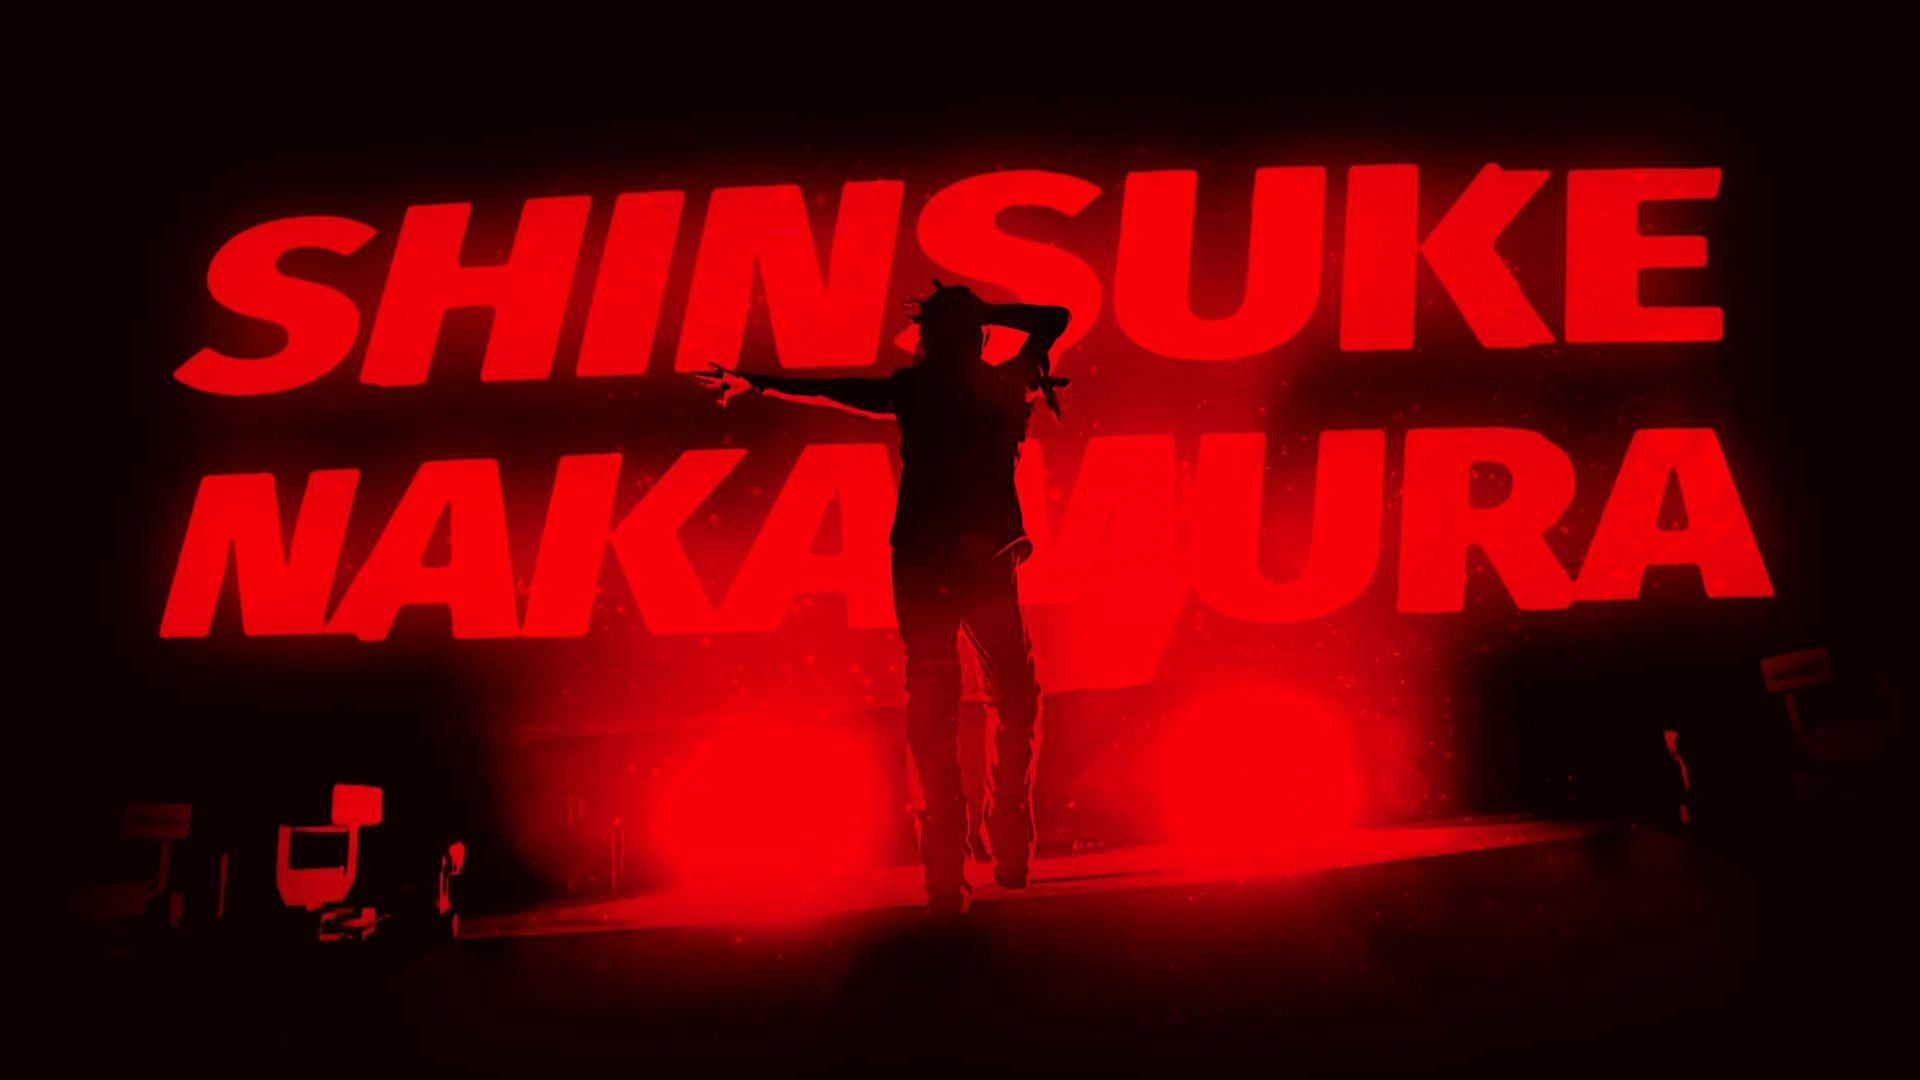 NXT TAKEOVER SPOILERS] Nakamura Entrance Wallpaper. : SquaredCircle